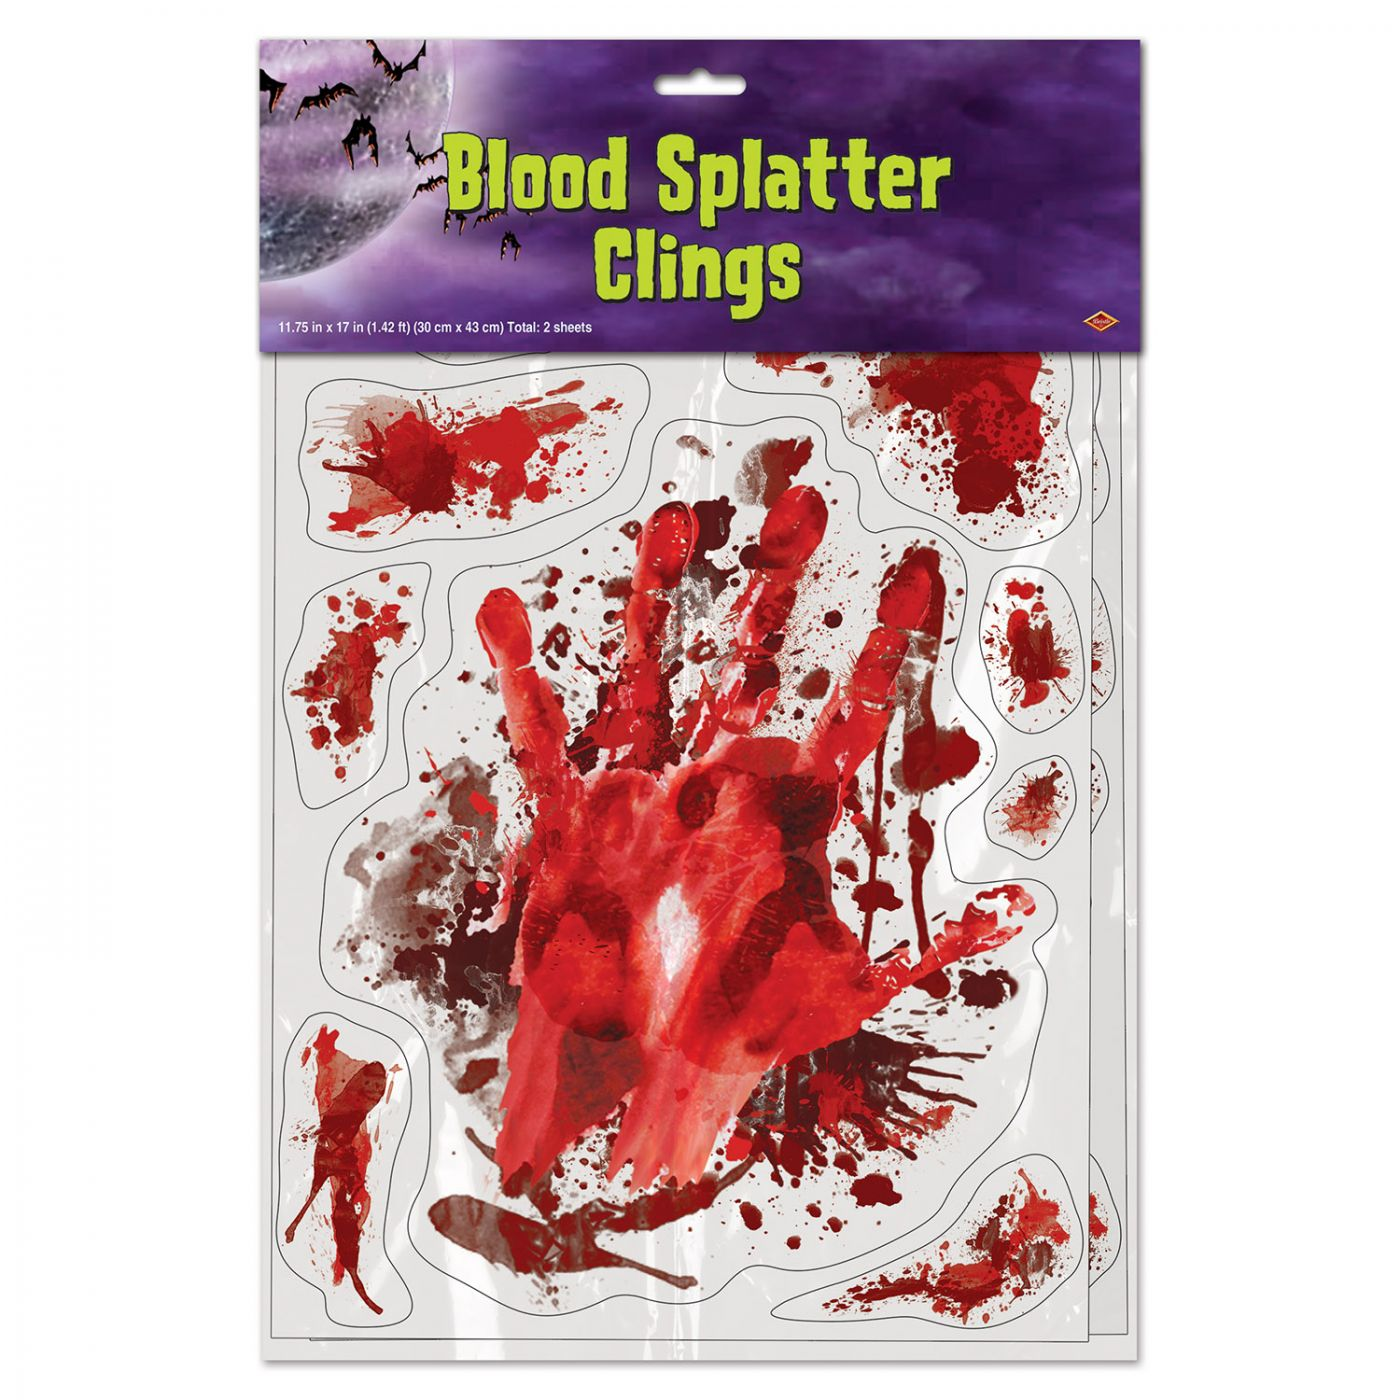 Blood Splatter Clings image